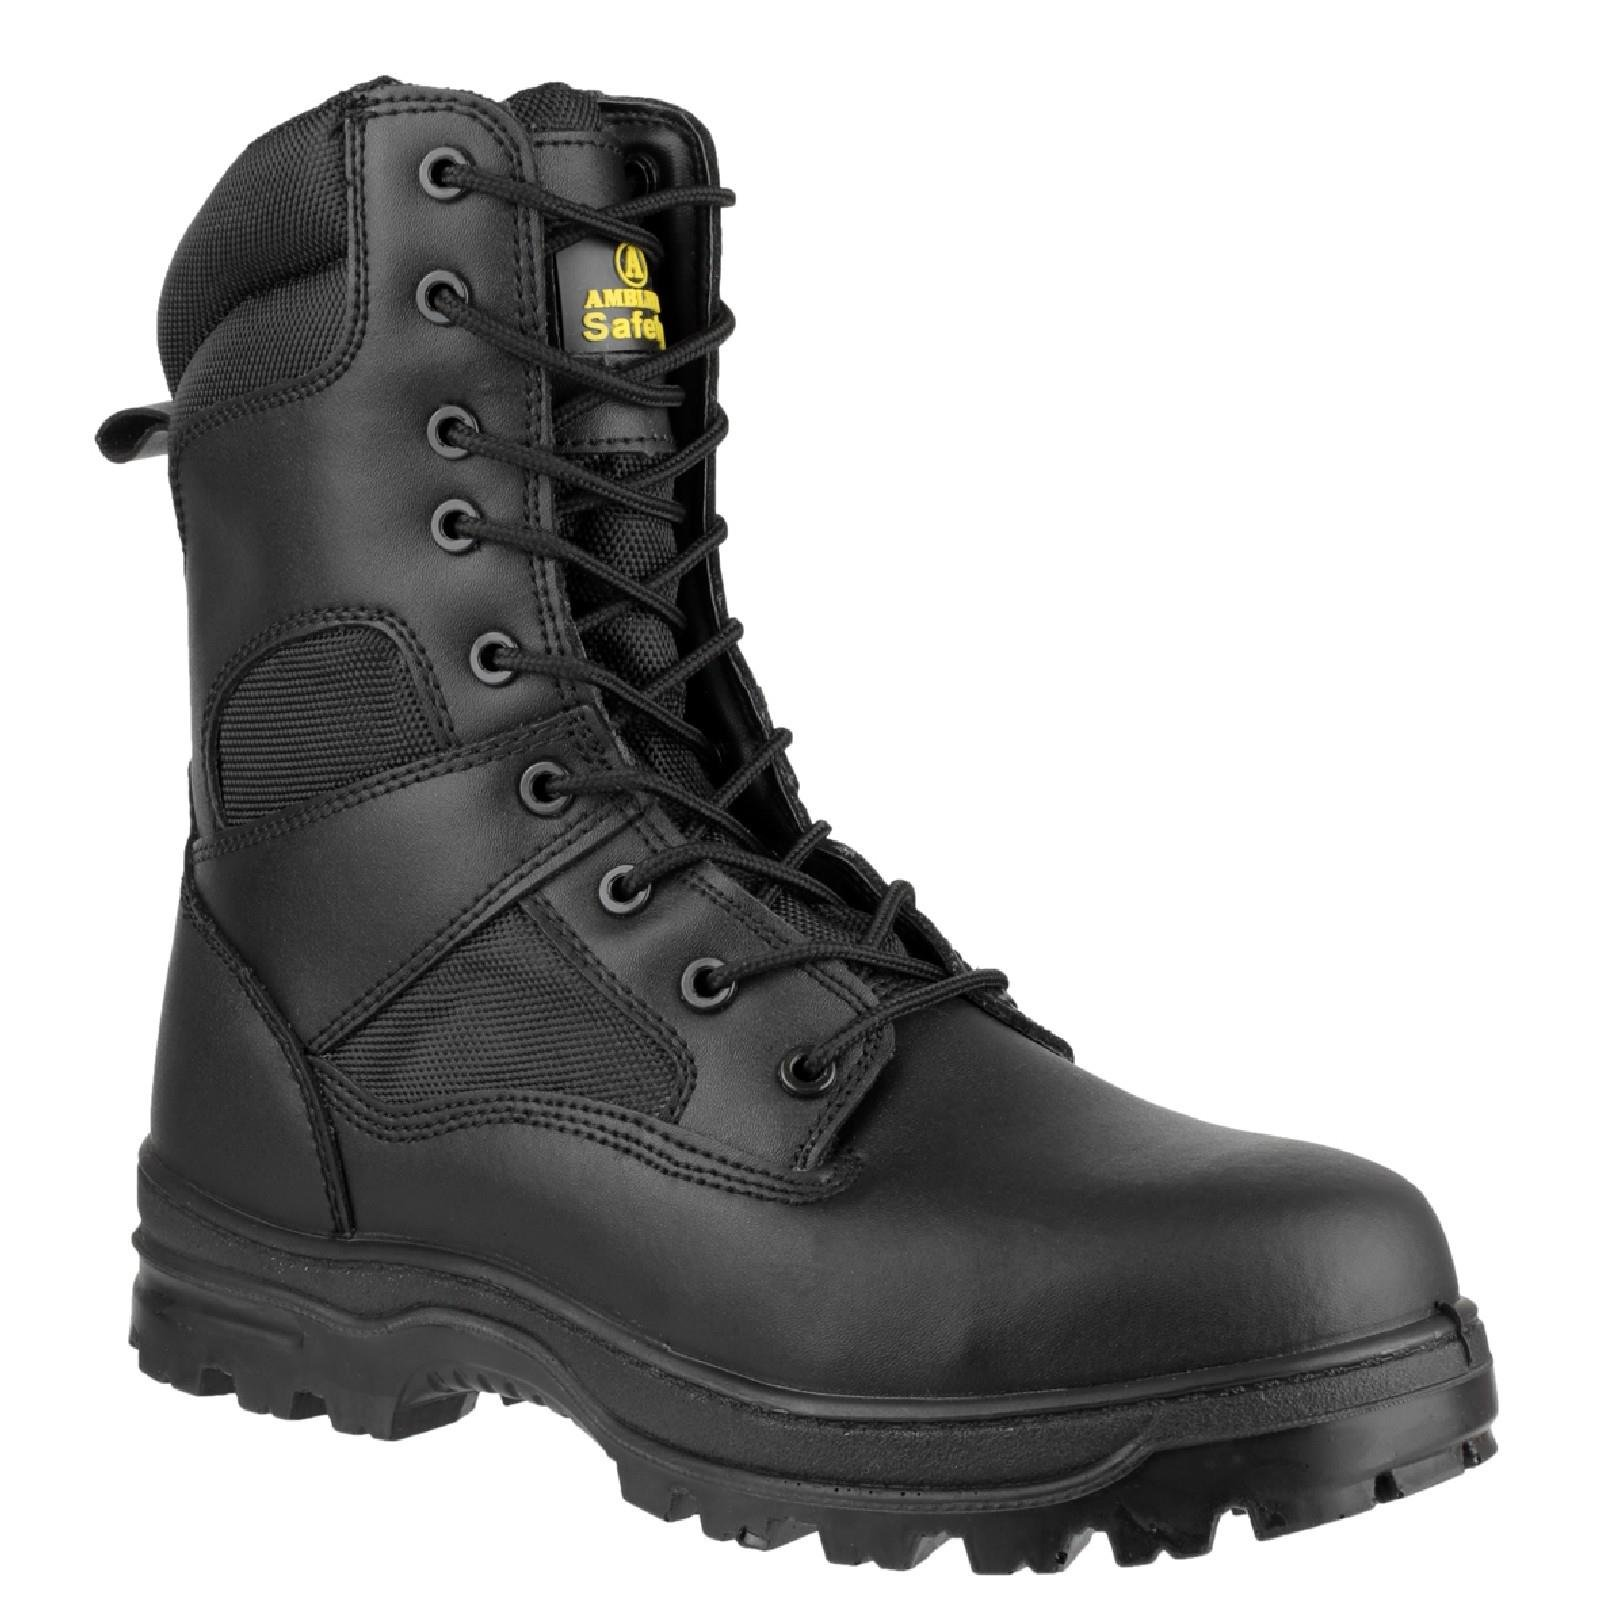 77c16561b49 S3 - SRC - Footsure - Amblers Safety - Black Midsole Safety Boot - Conforms  to EN ISO20345 SRC S3 - FS-FS009C